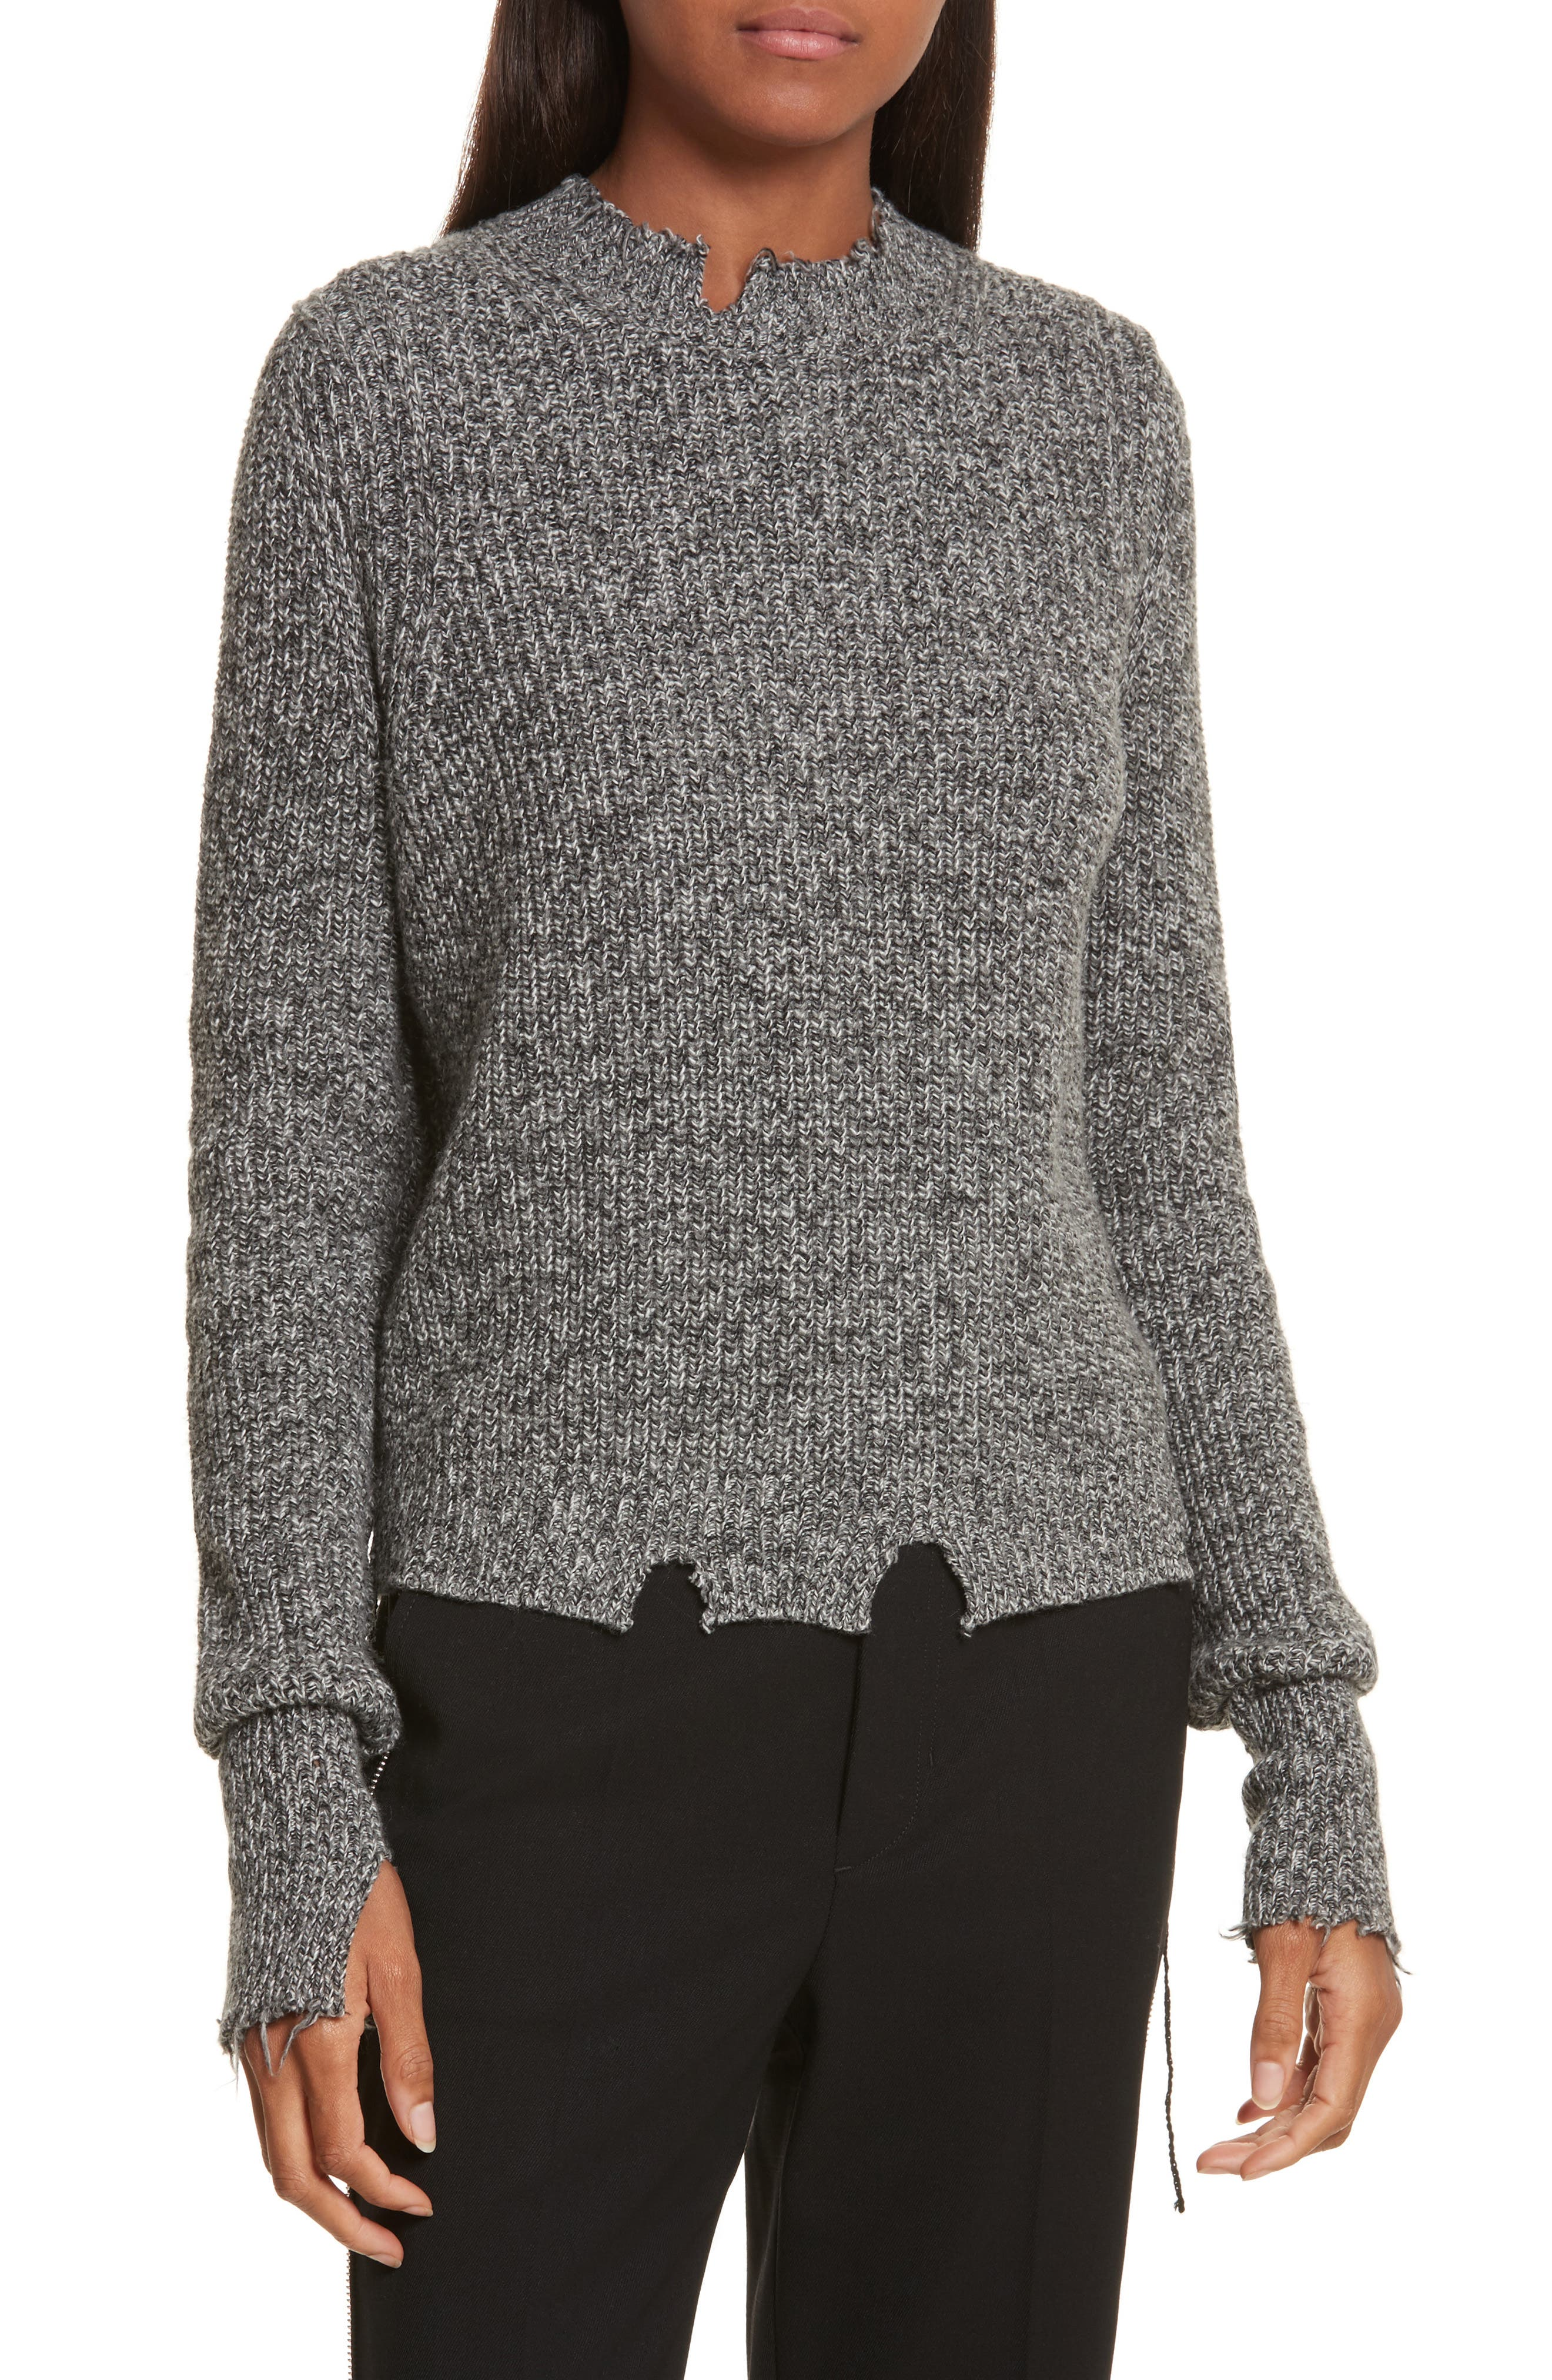 Grunge Marl Sweater,                         Main,                         color, Charcoal